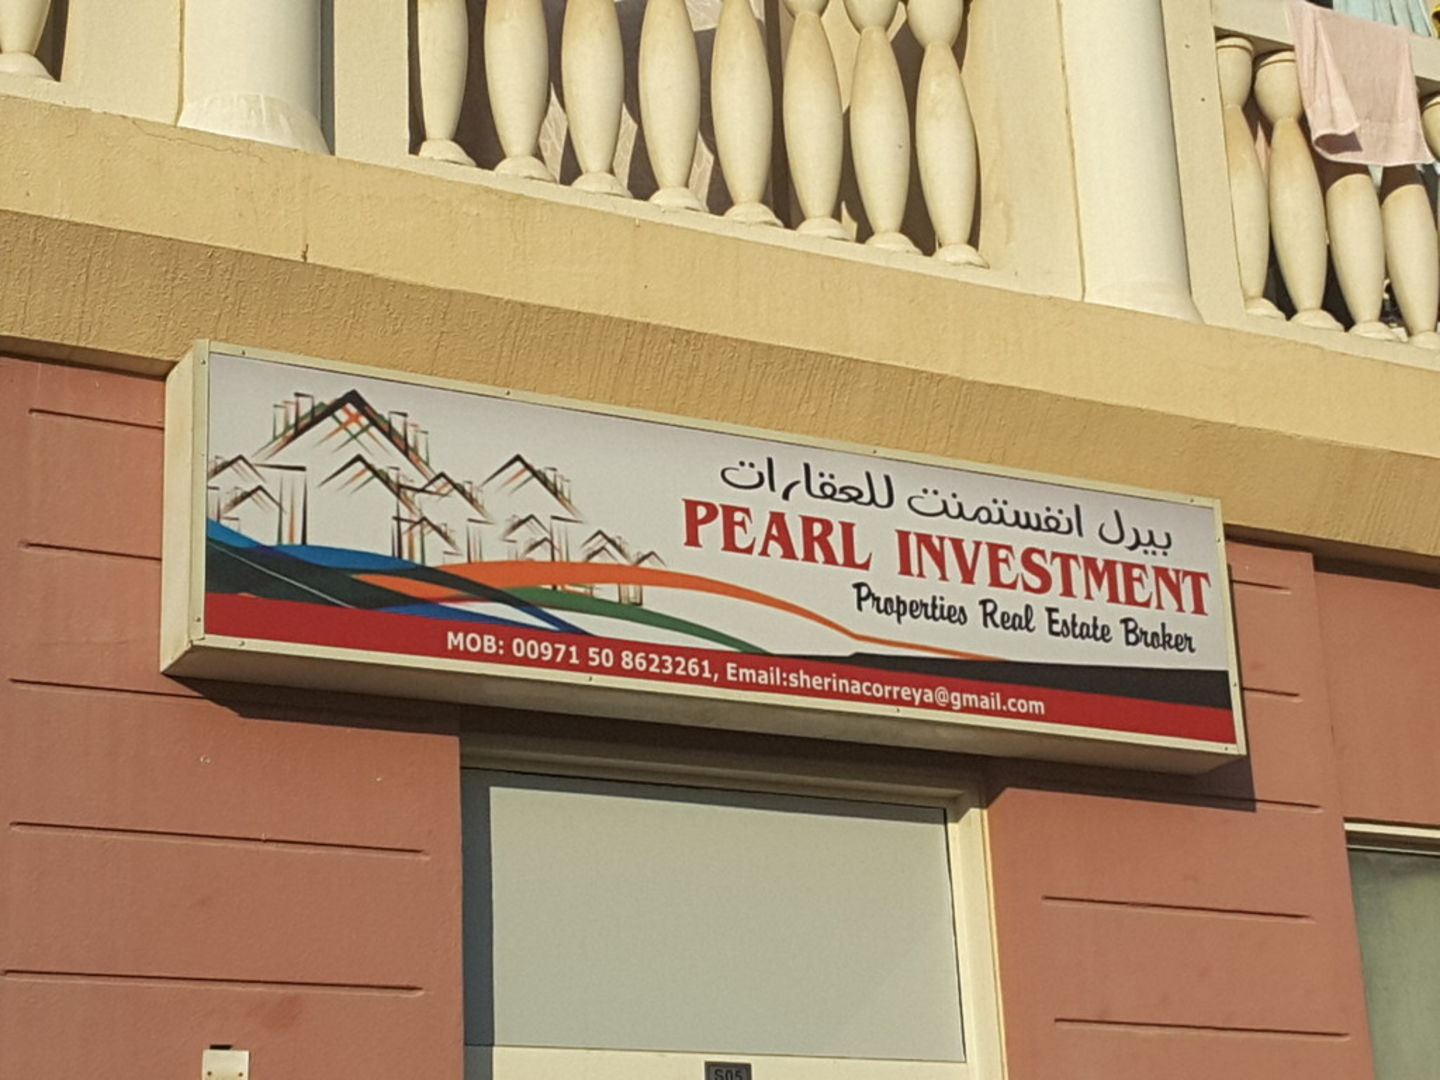 HiDubai-business-pearl-investment-properties-real-estate-broker-housing-real-estate-real-estate-agencies-international-city-warsan-1-dubai-2